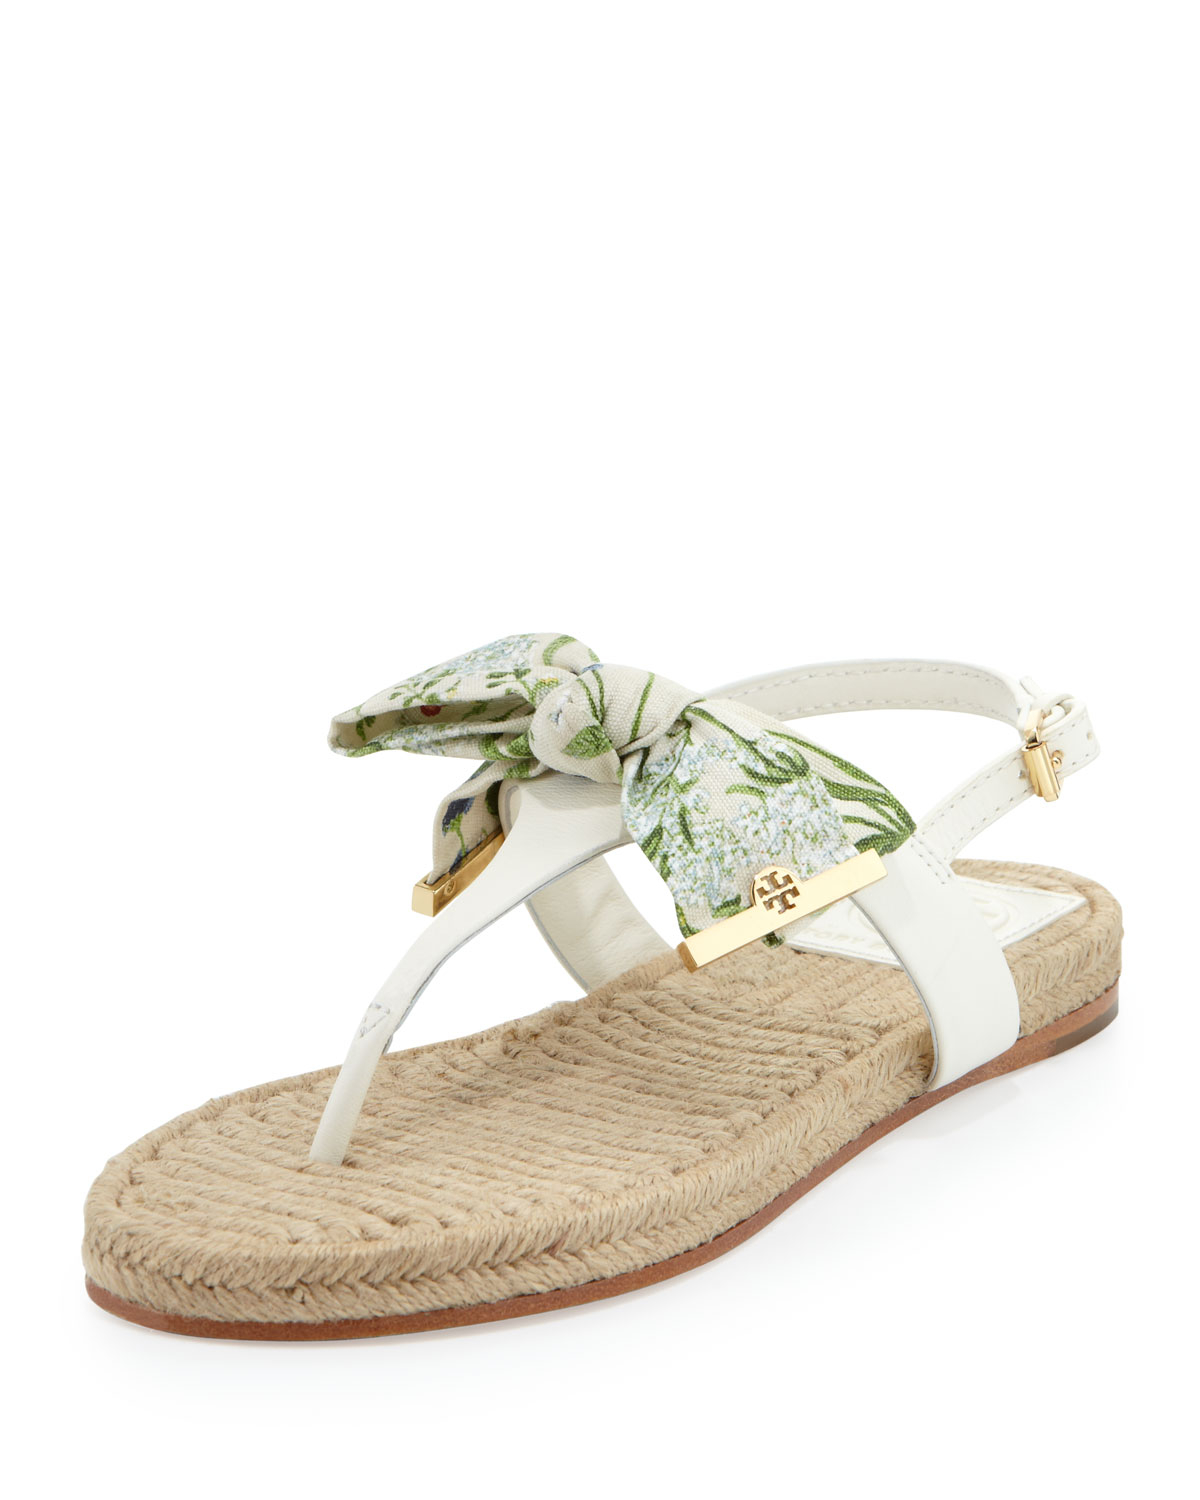 d8264ddeee362 Lyst - Tory Burch Penny Floral-print Bow Thong Sandal in White